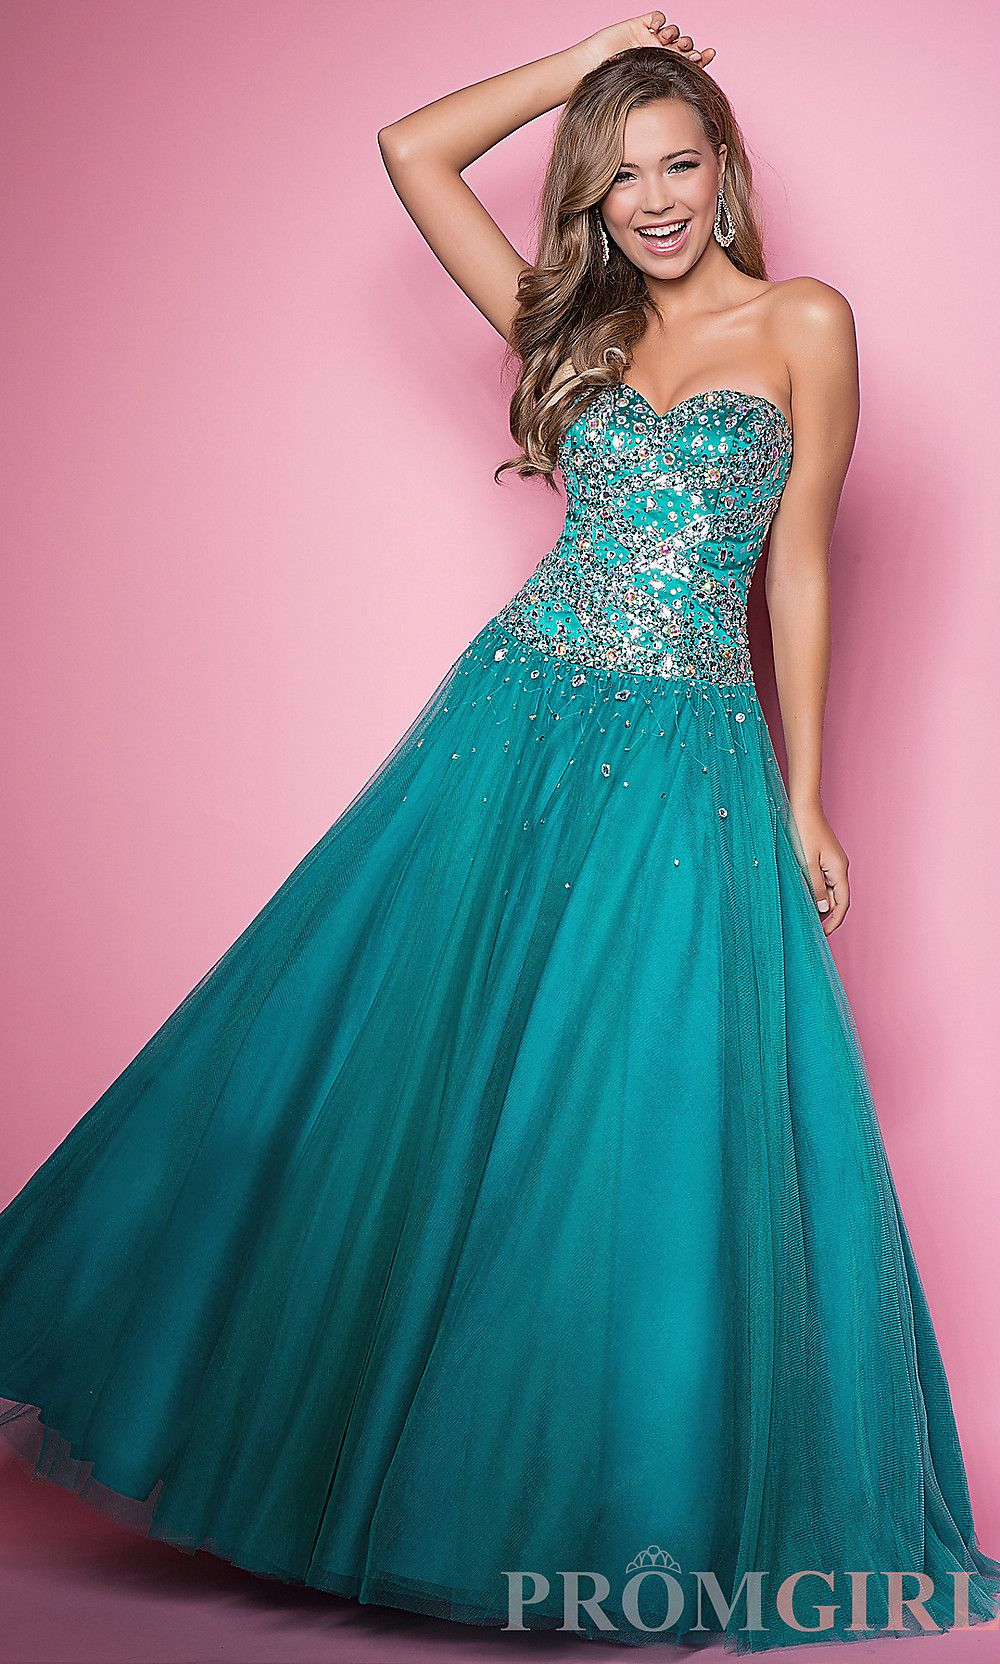 Really cute teal prom dress | Dresses | Pinterest | Prom, Teal and ...